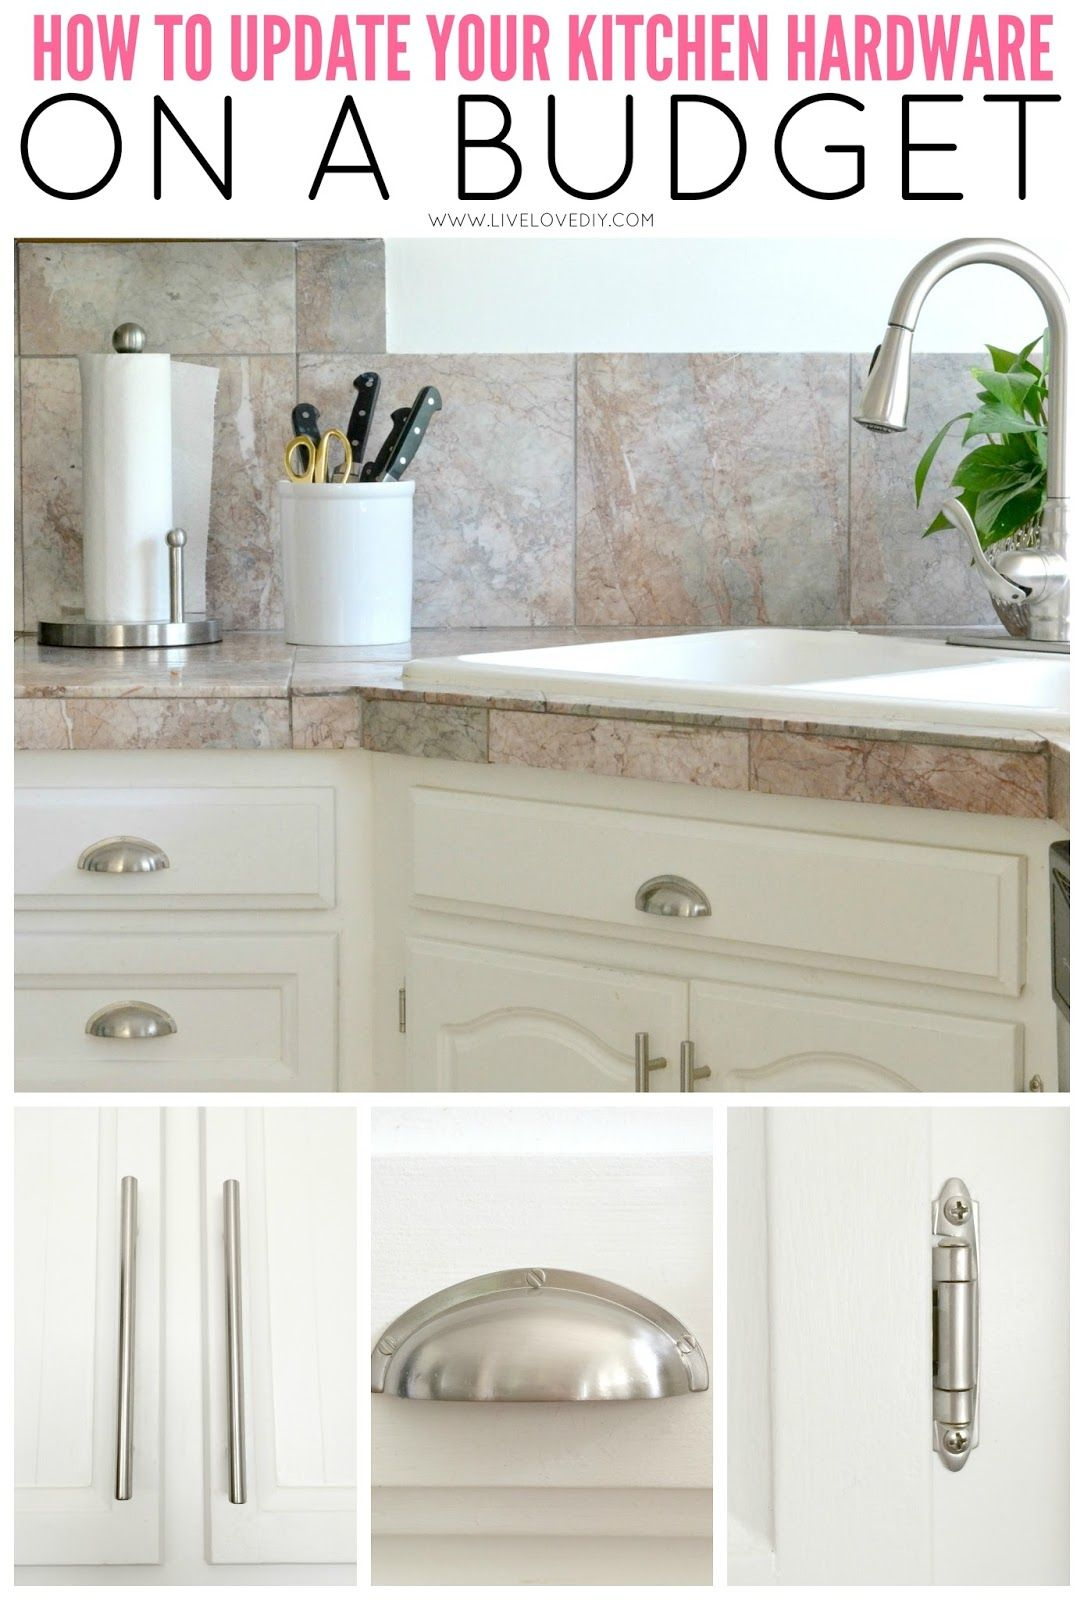 How To Paint Your Kitchen Cabinets In 10 Easy Steps (and Where To Find NICE